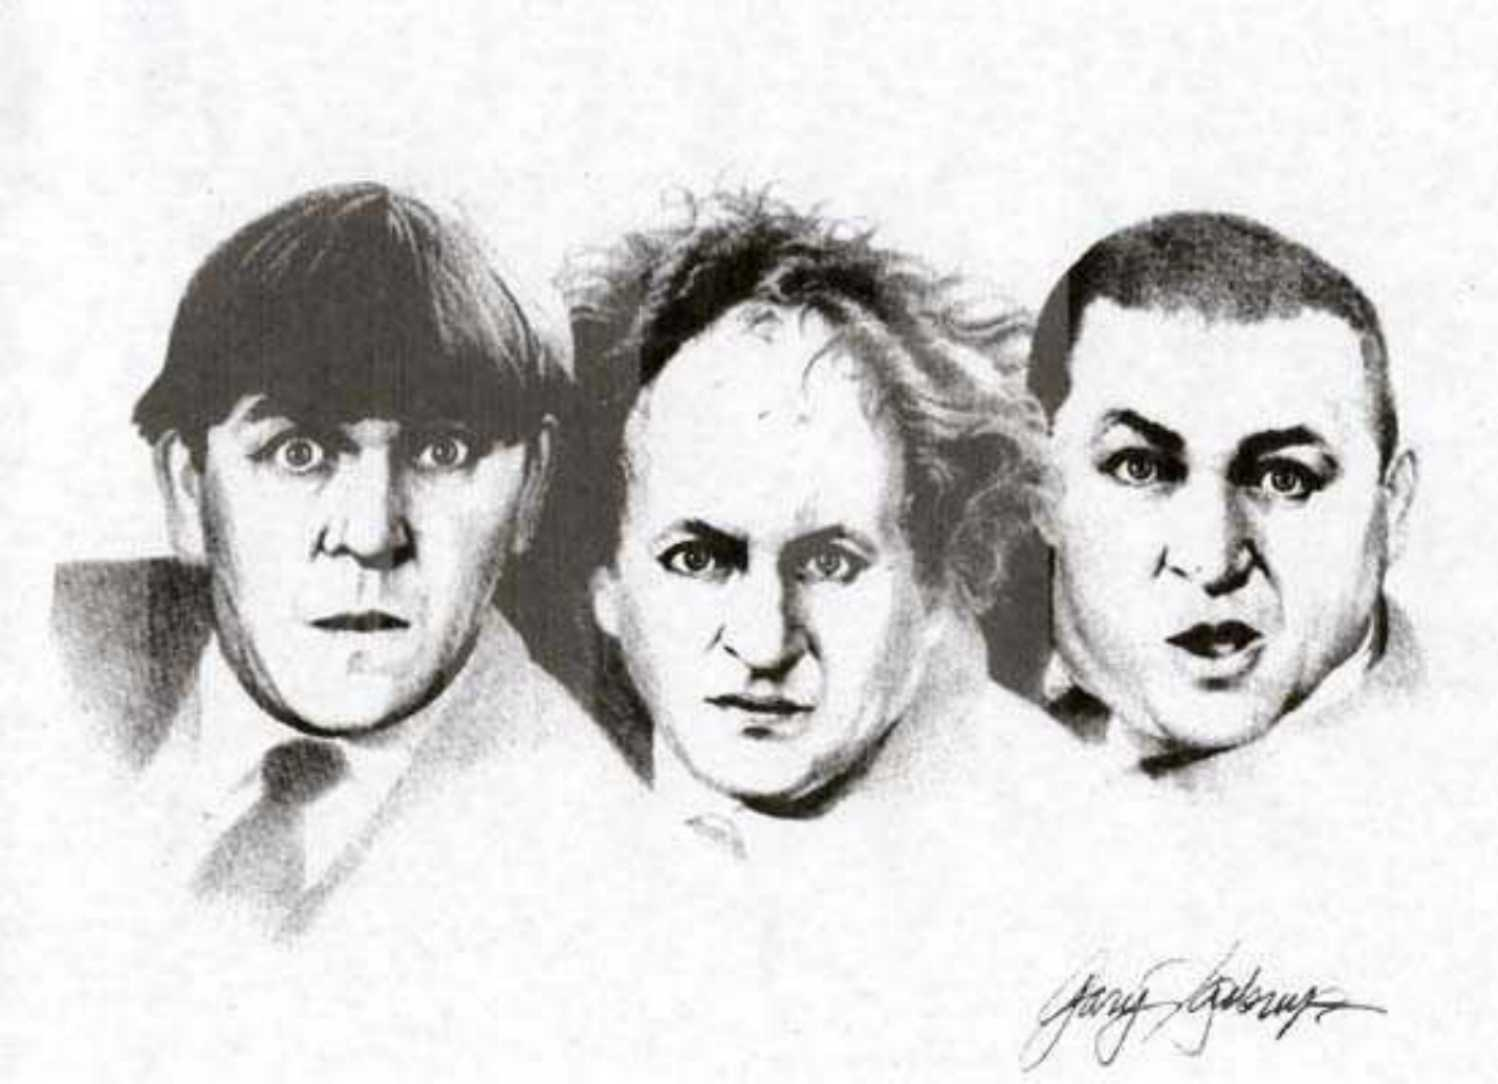 Portrait of the Three Stooges